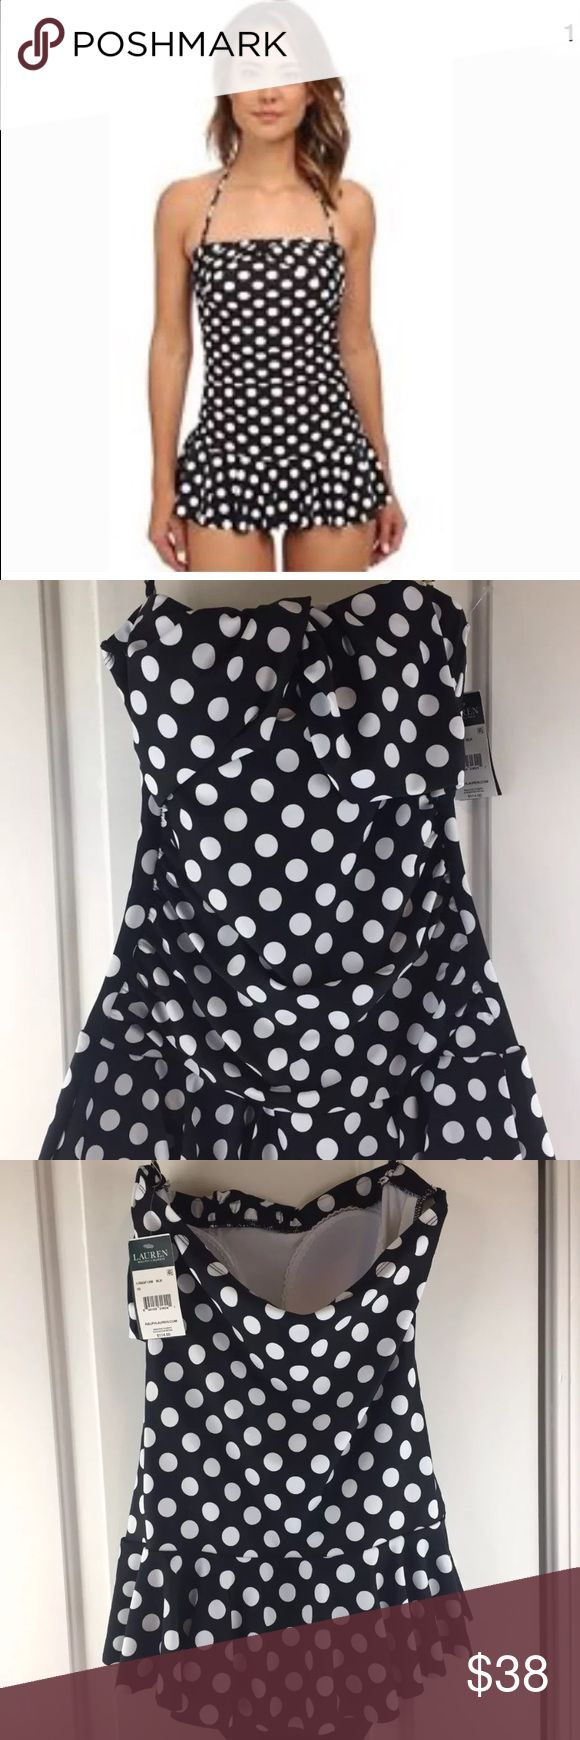 Ralph Lauren Black White Polka Dot Swimsuit New Woman's Ralph Lauren black white Polka Dot one piece Swimsuit . Has built in bra pads.  Size 10 New with tags  Comes from a smoke free home Ralph Lauren Swim One Pieces